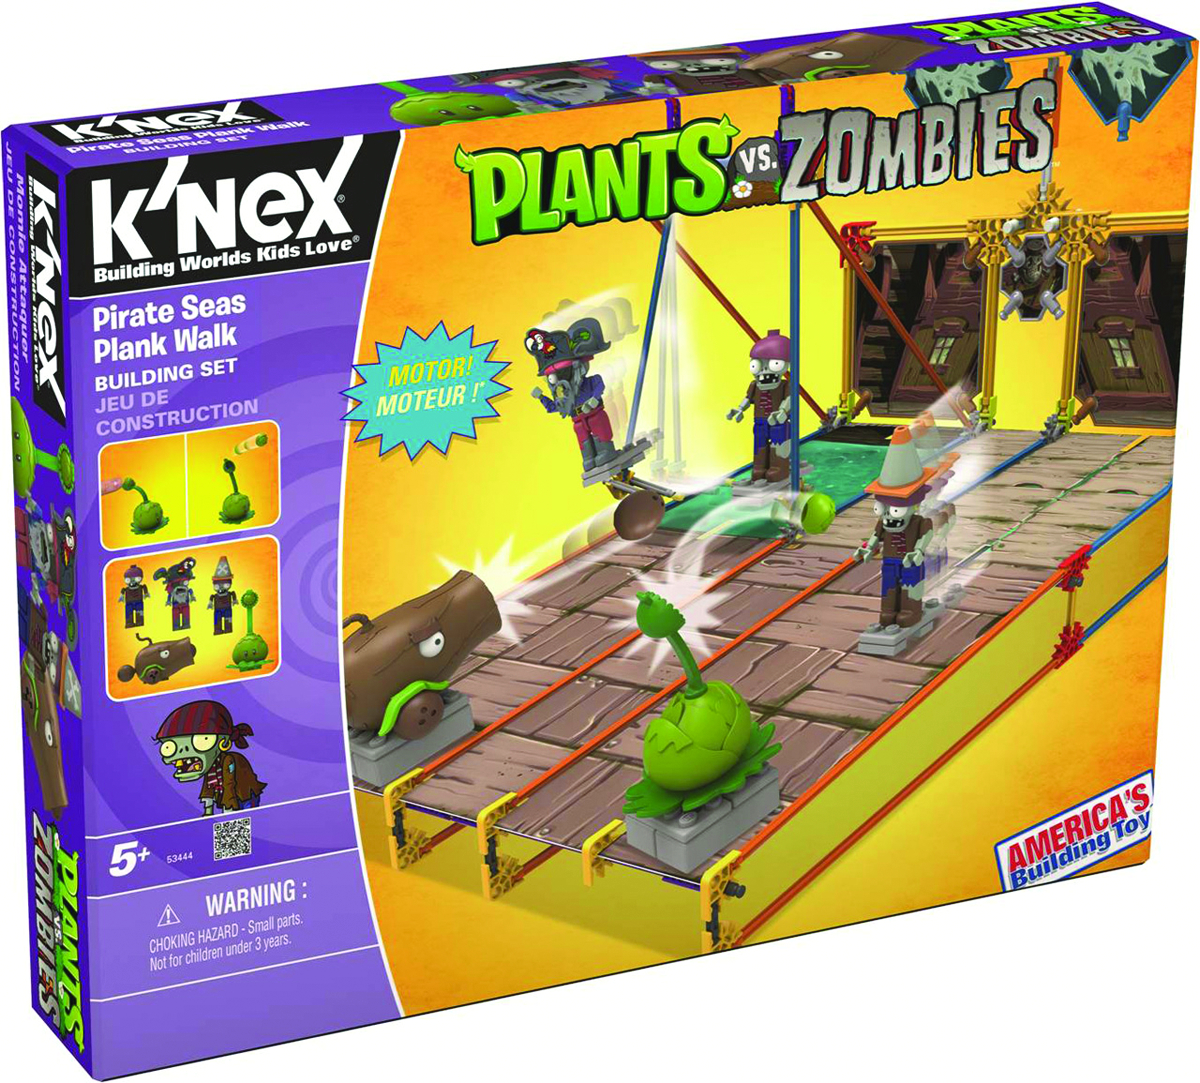 KNEX PLANTS VS ZOMBIES PIRATE PLANK WALK SET